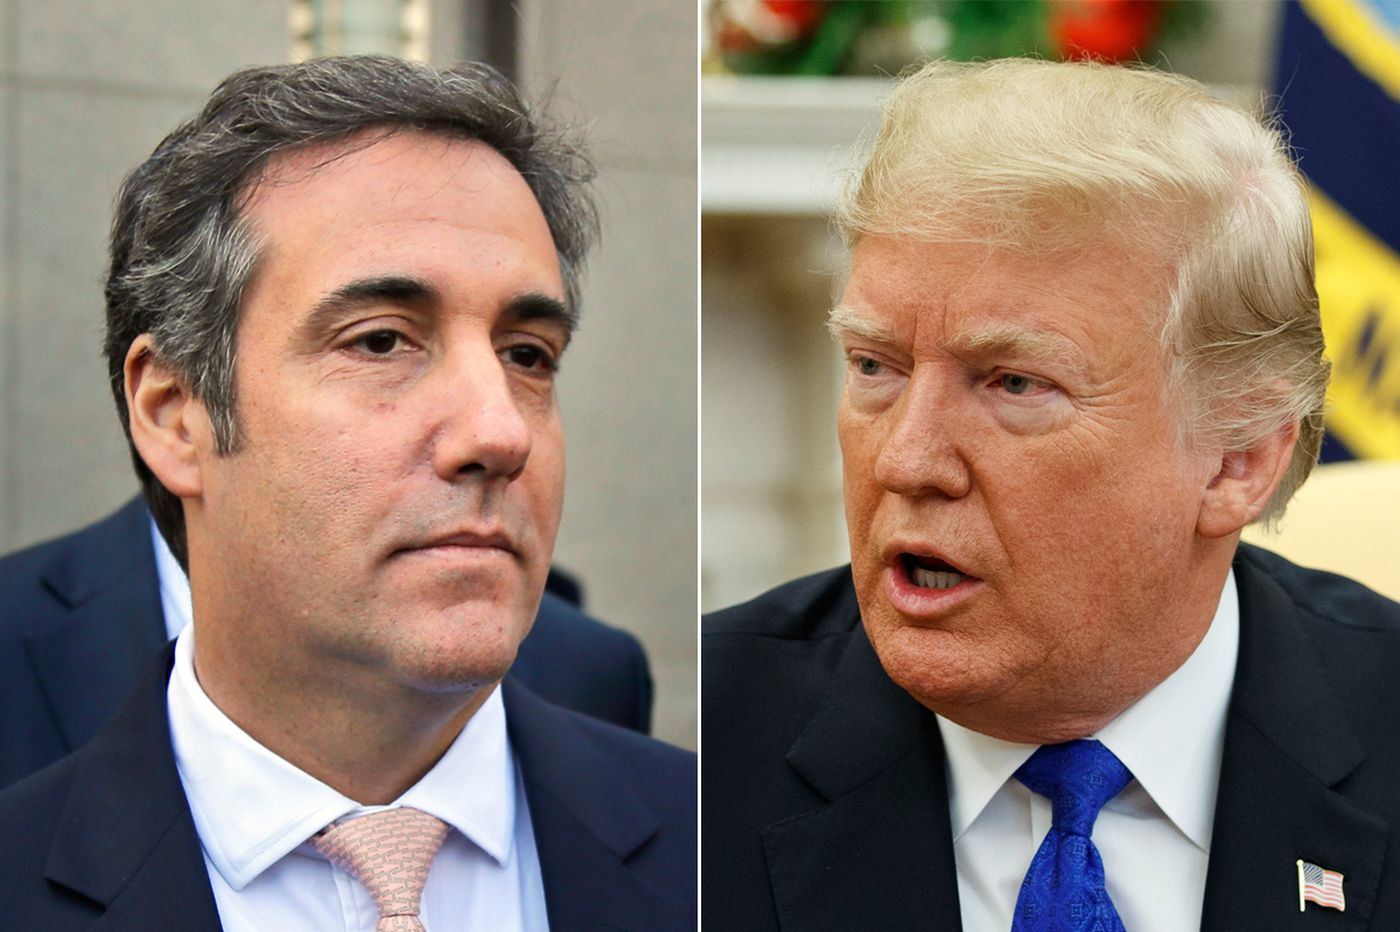 Ex-Trump lawyer Michael Cohen gets 3 years in prison, admits covering up 'dirty deeds'